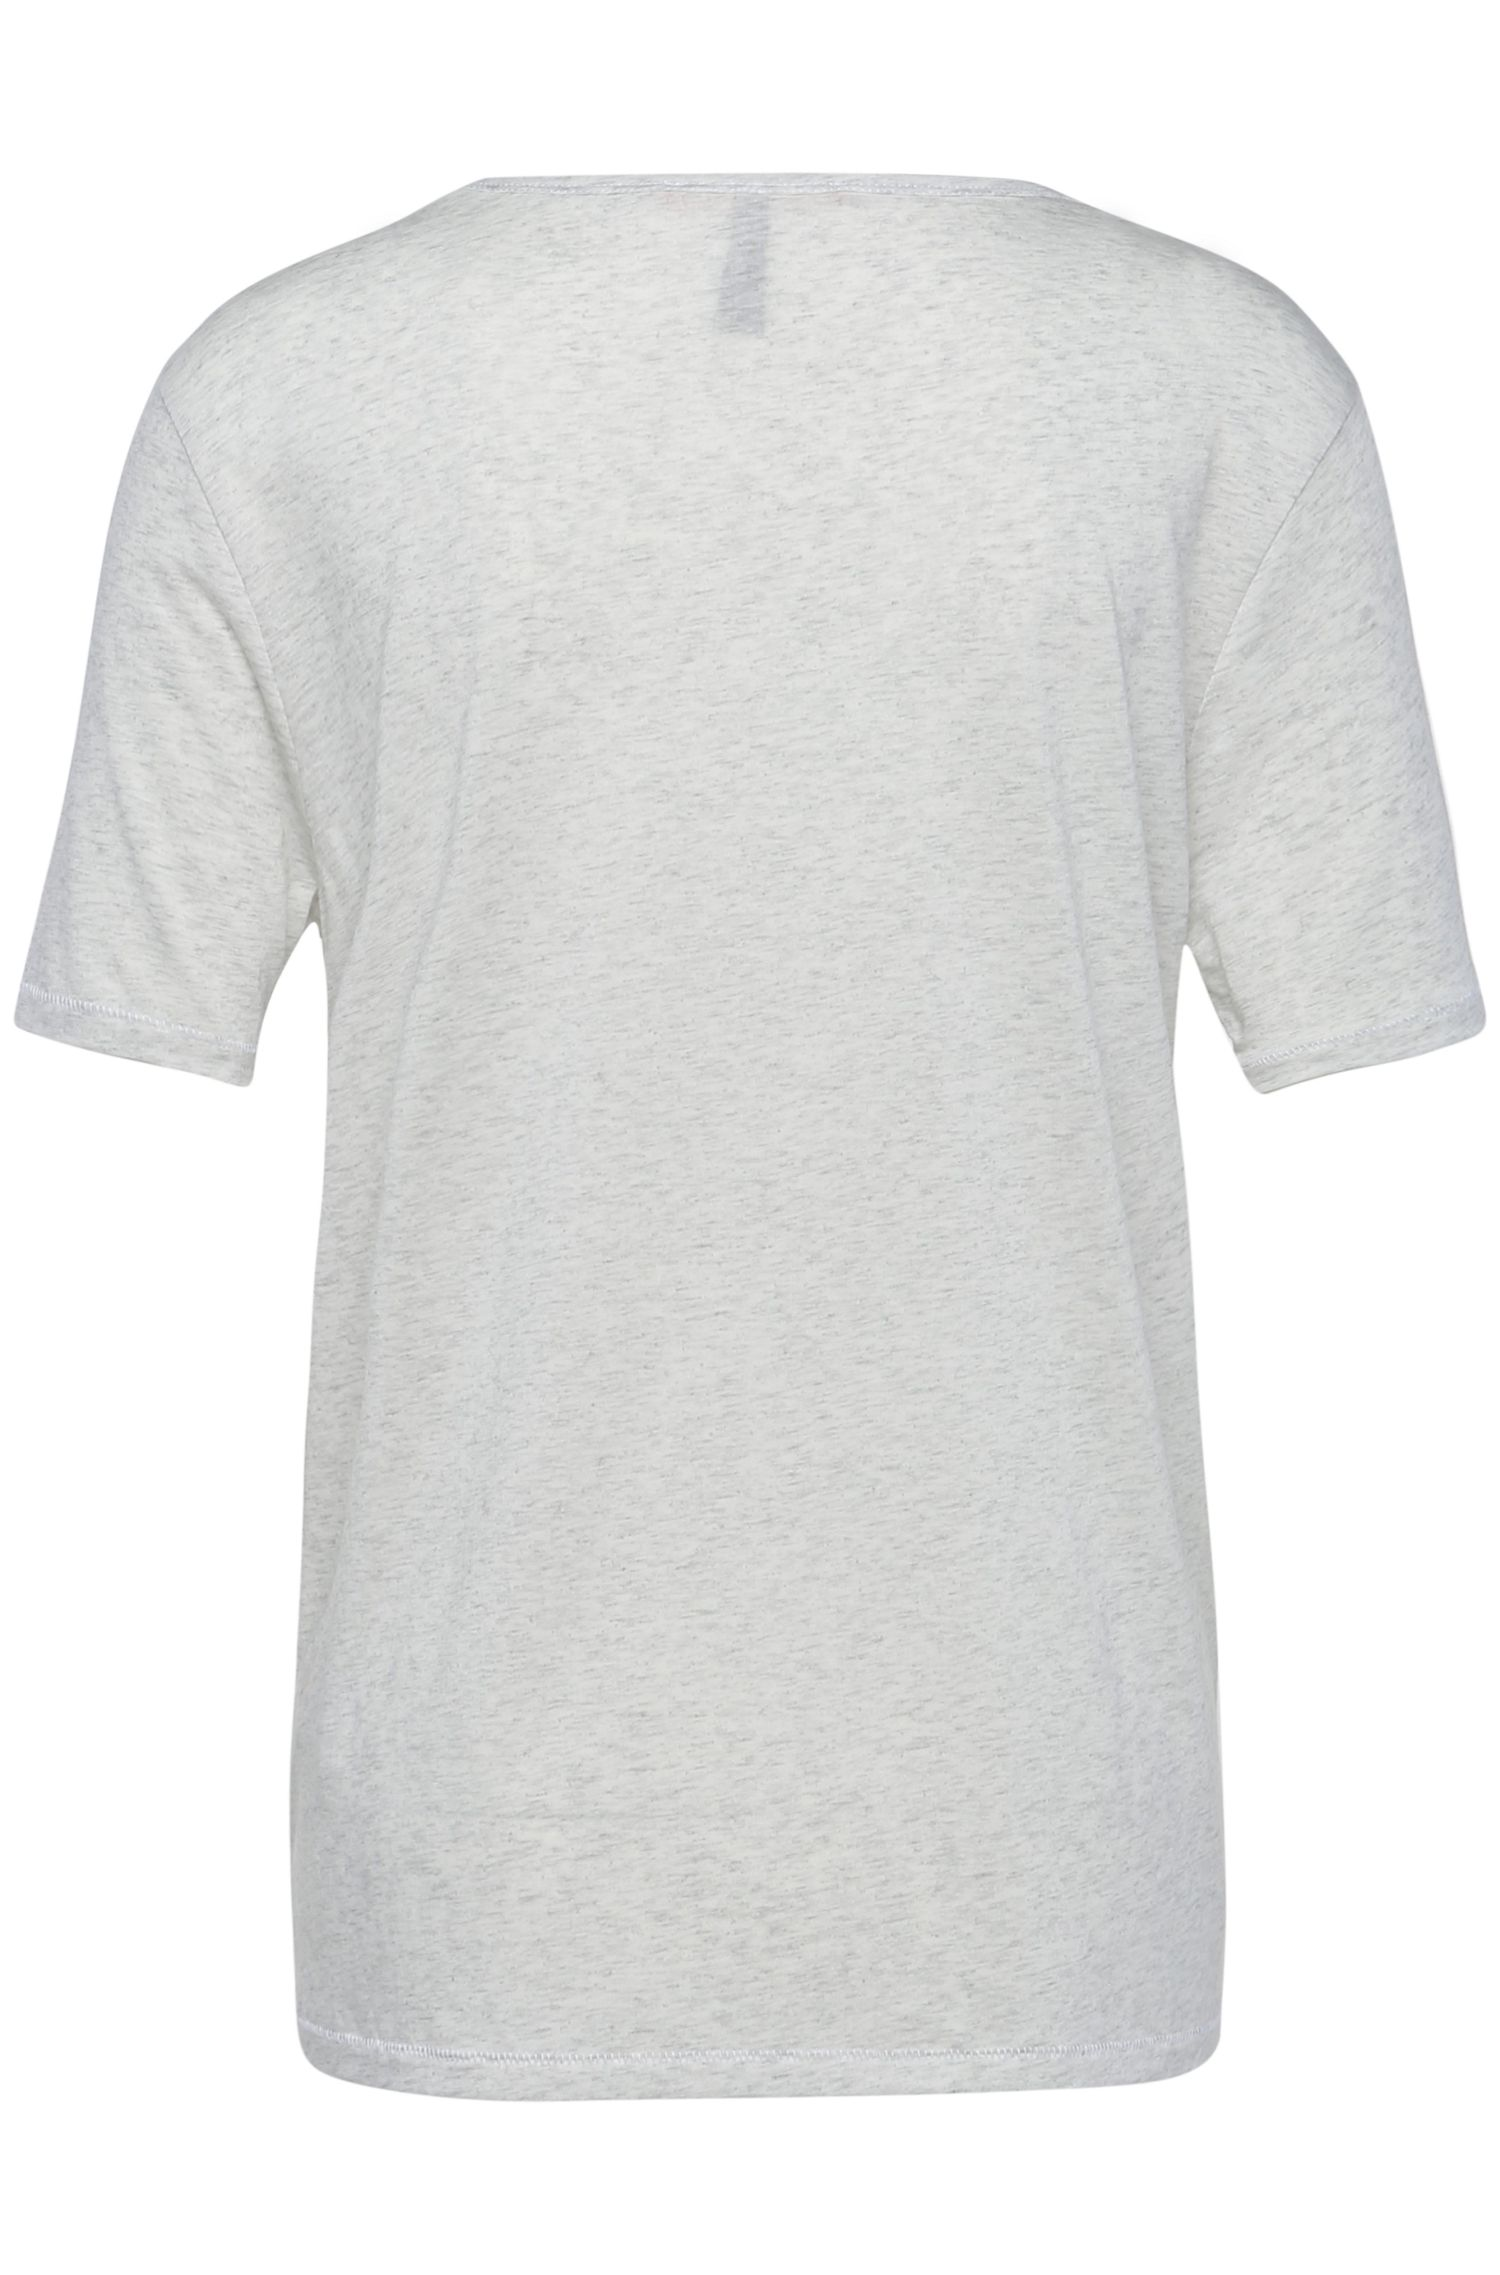 Regular-fit t-shirt in fabric blend with cotton: 'Tafavorite', White